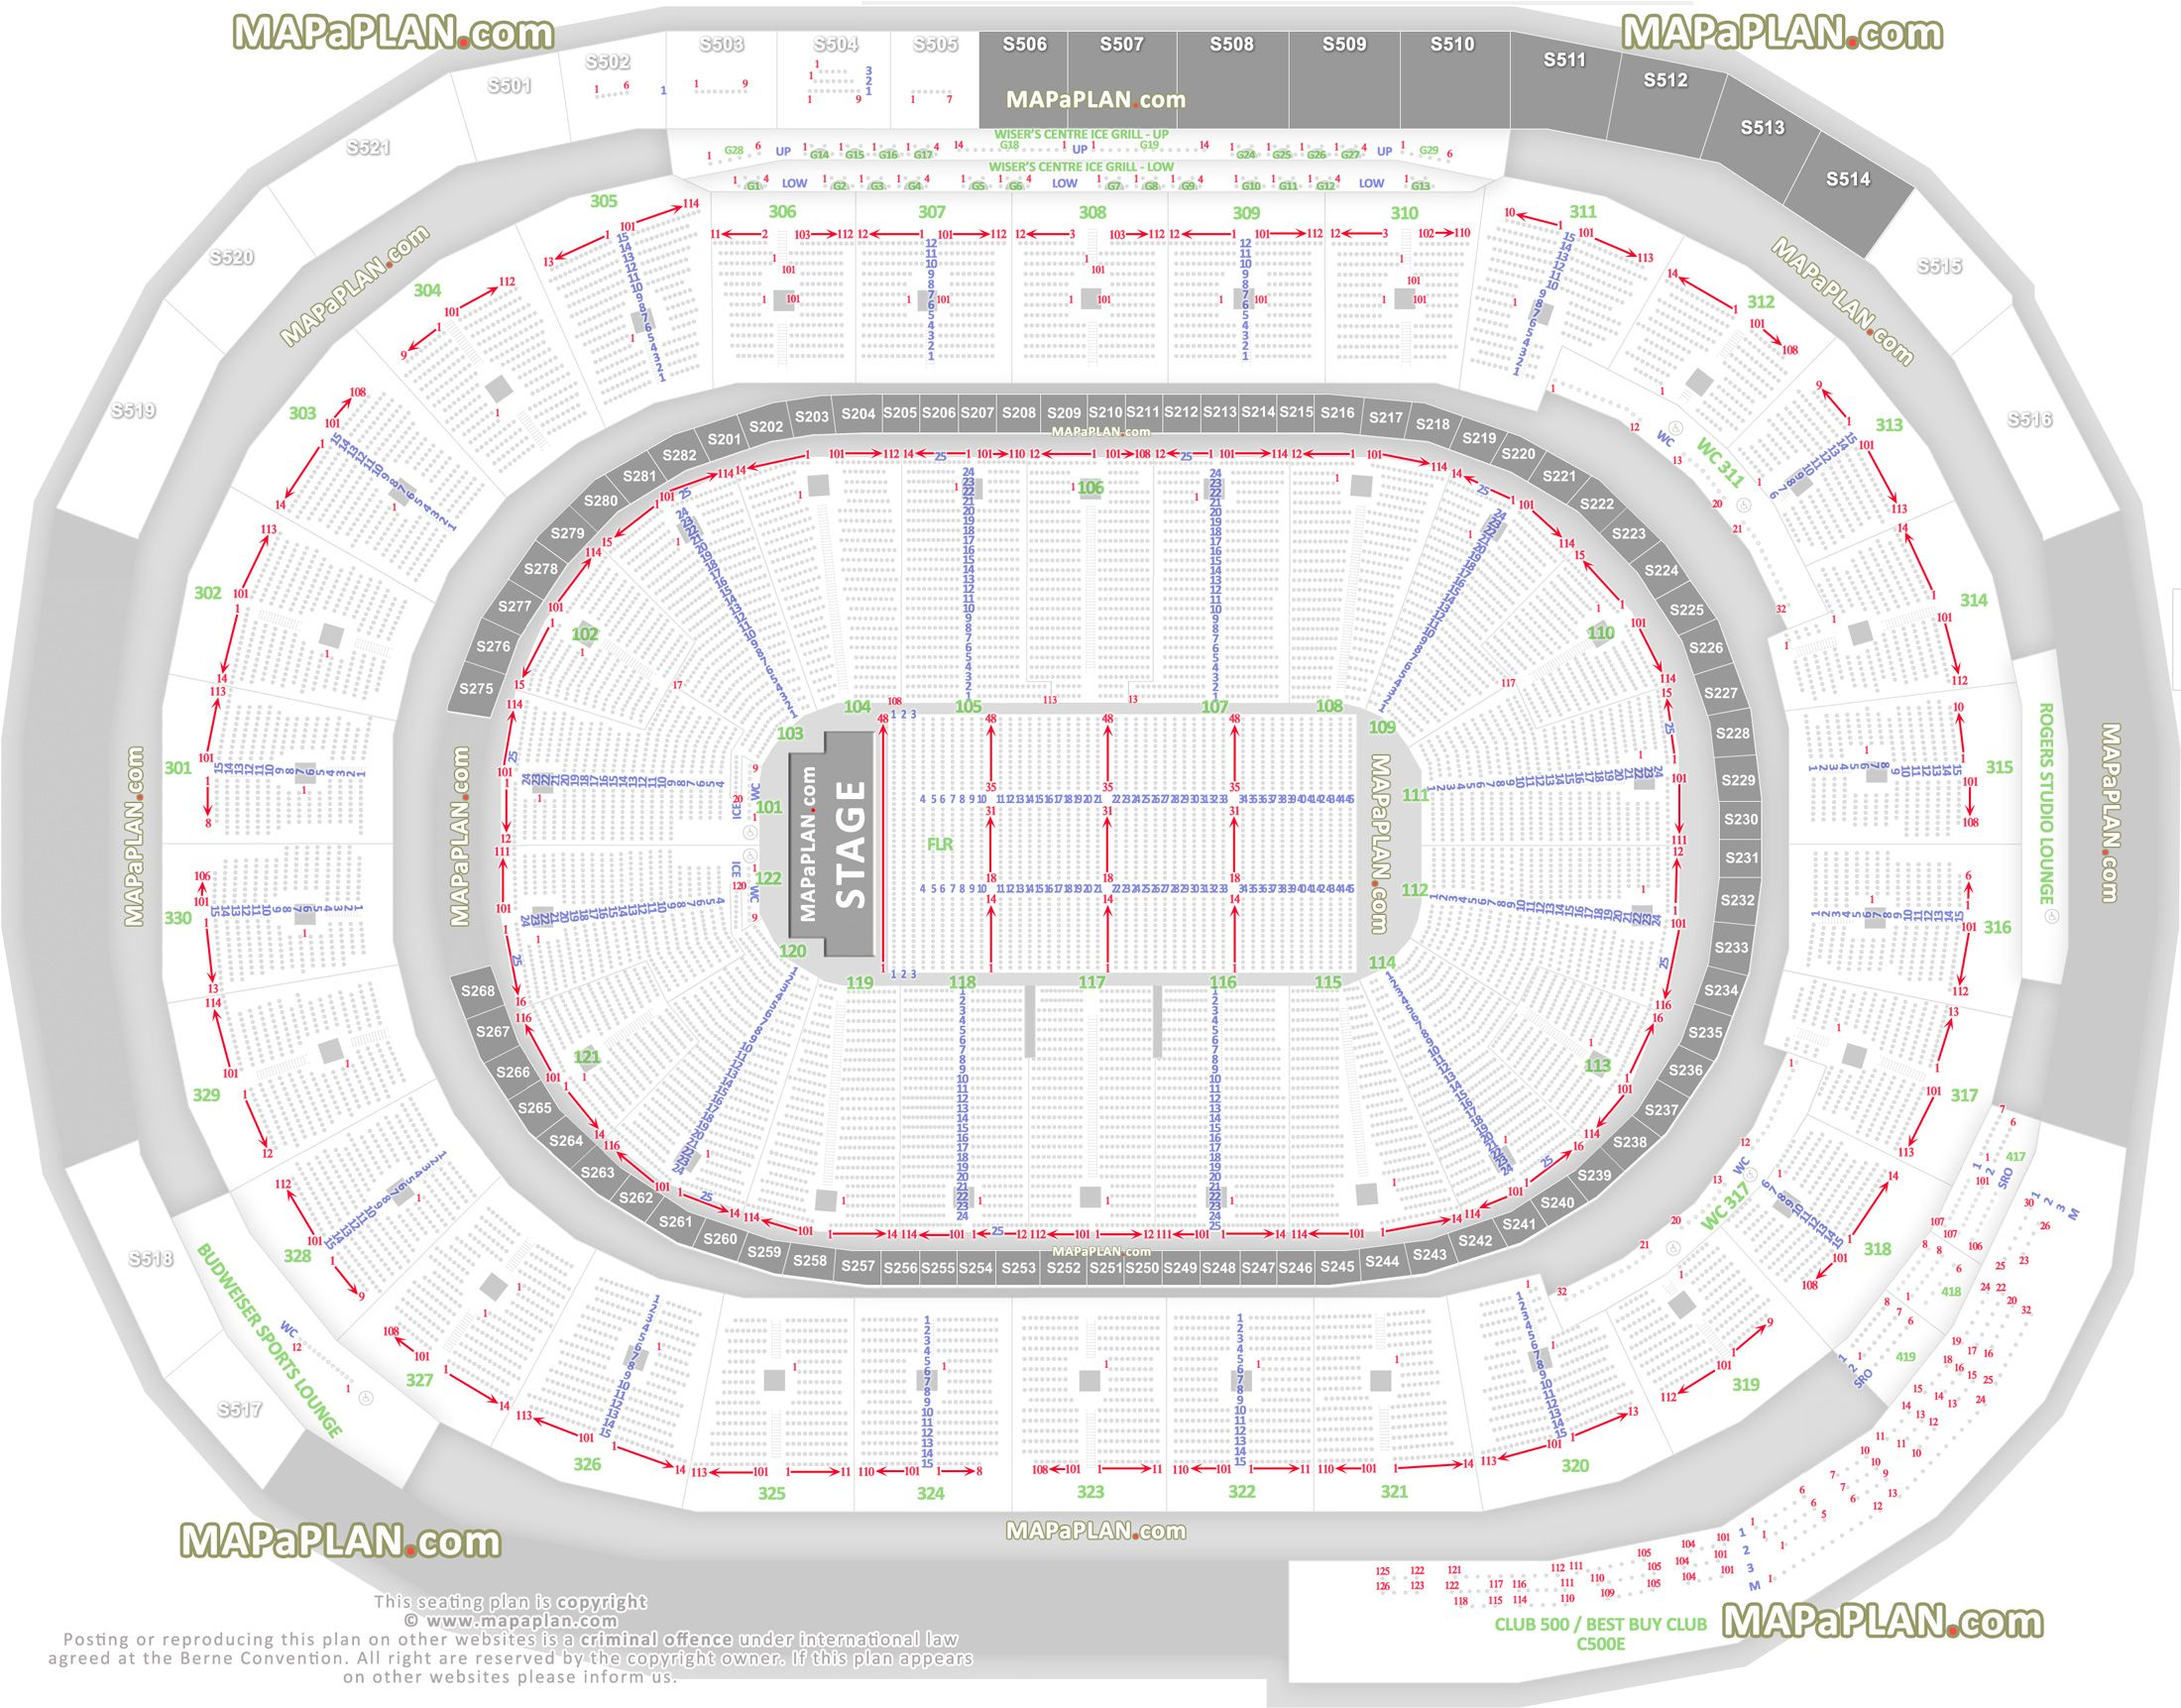 Detailed Seat Row Numbers End Stage Full Concert Sections Floor Plan Arena Lower Upper Bowl Layout Vancouver Rogers Seating Charts Garden Layout Garden Seating